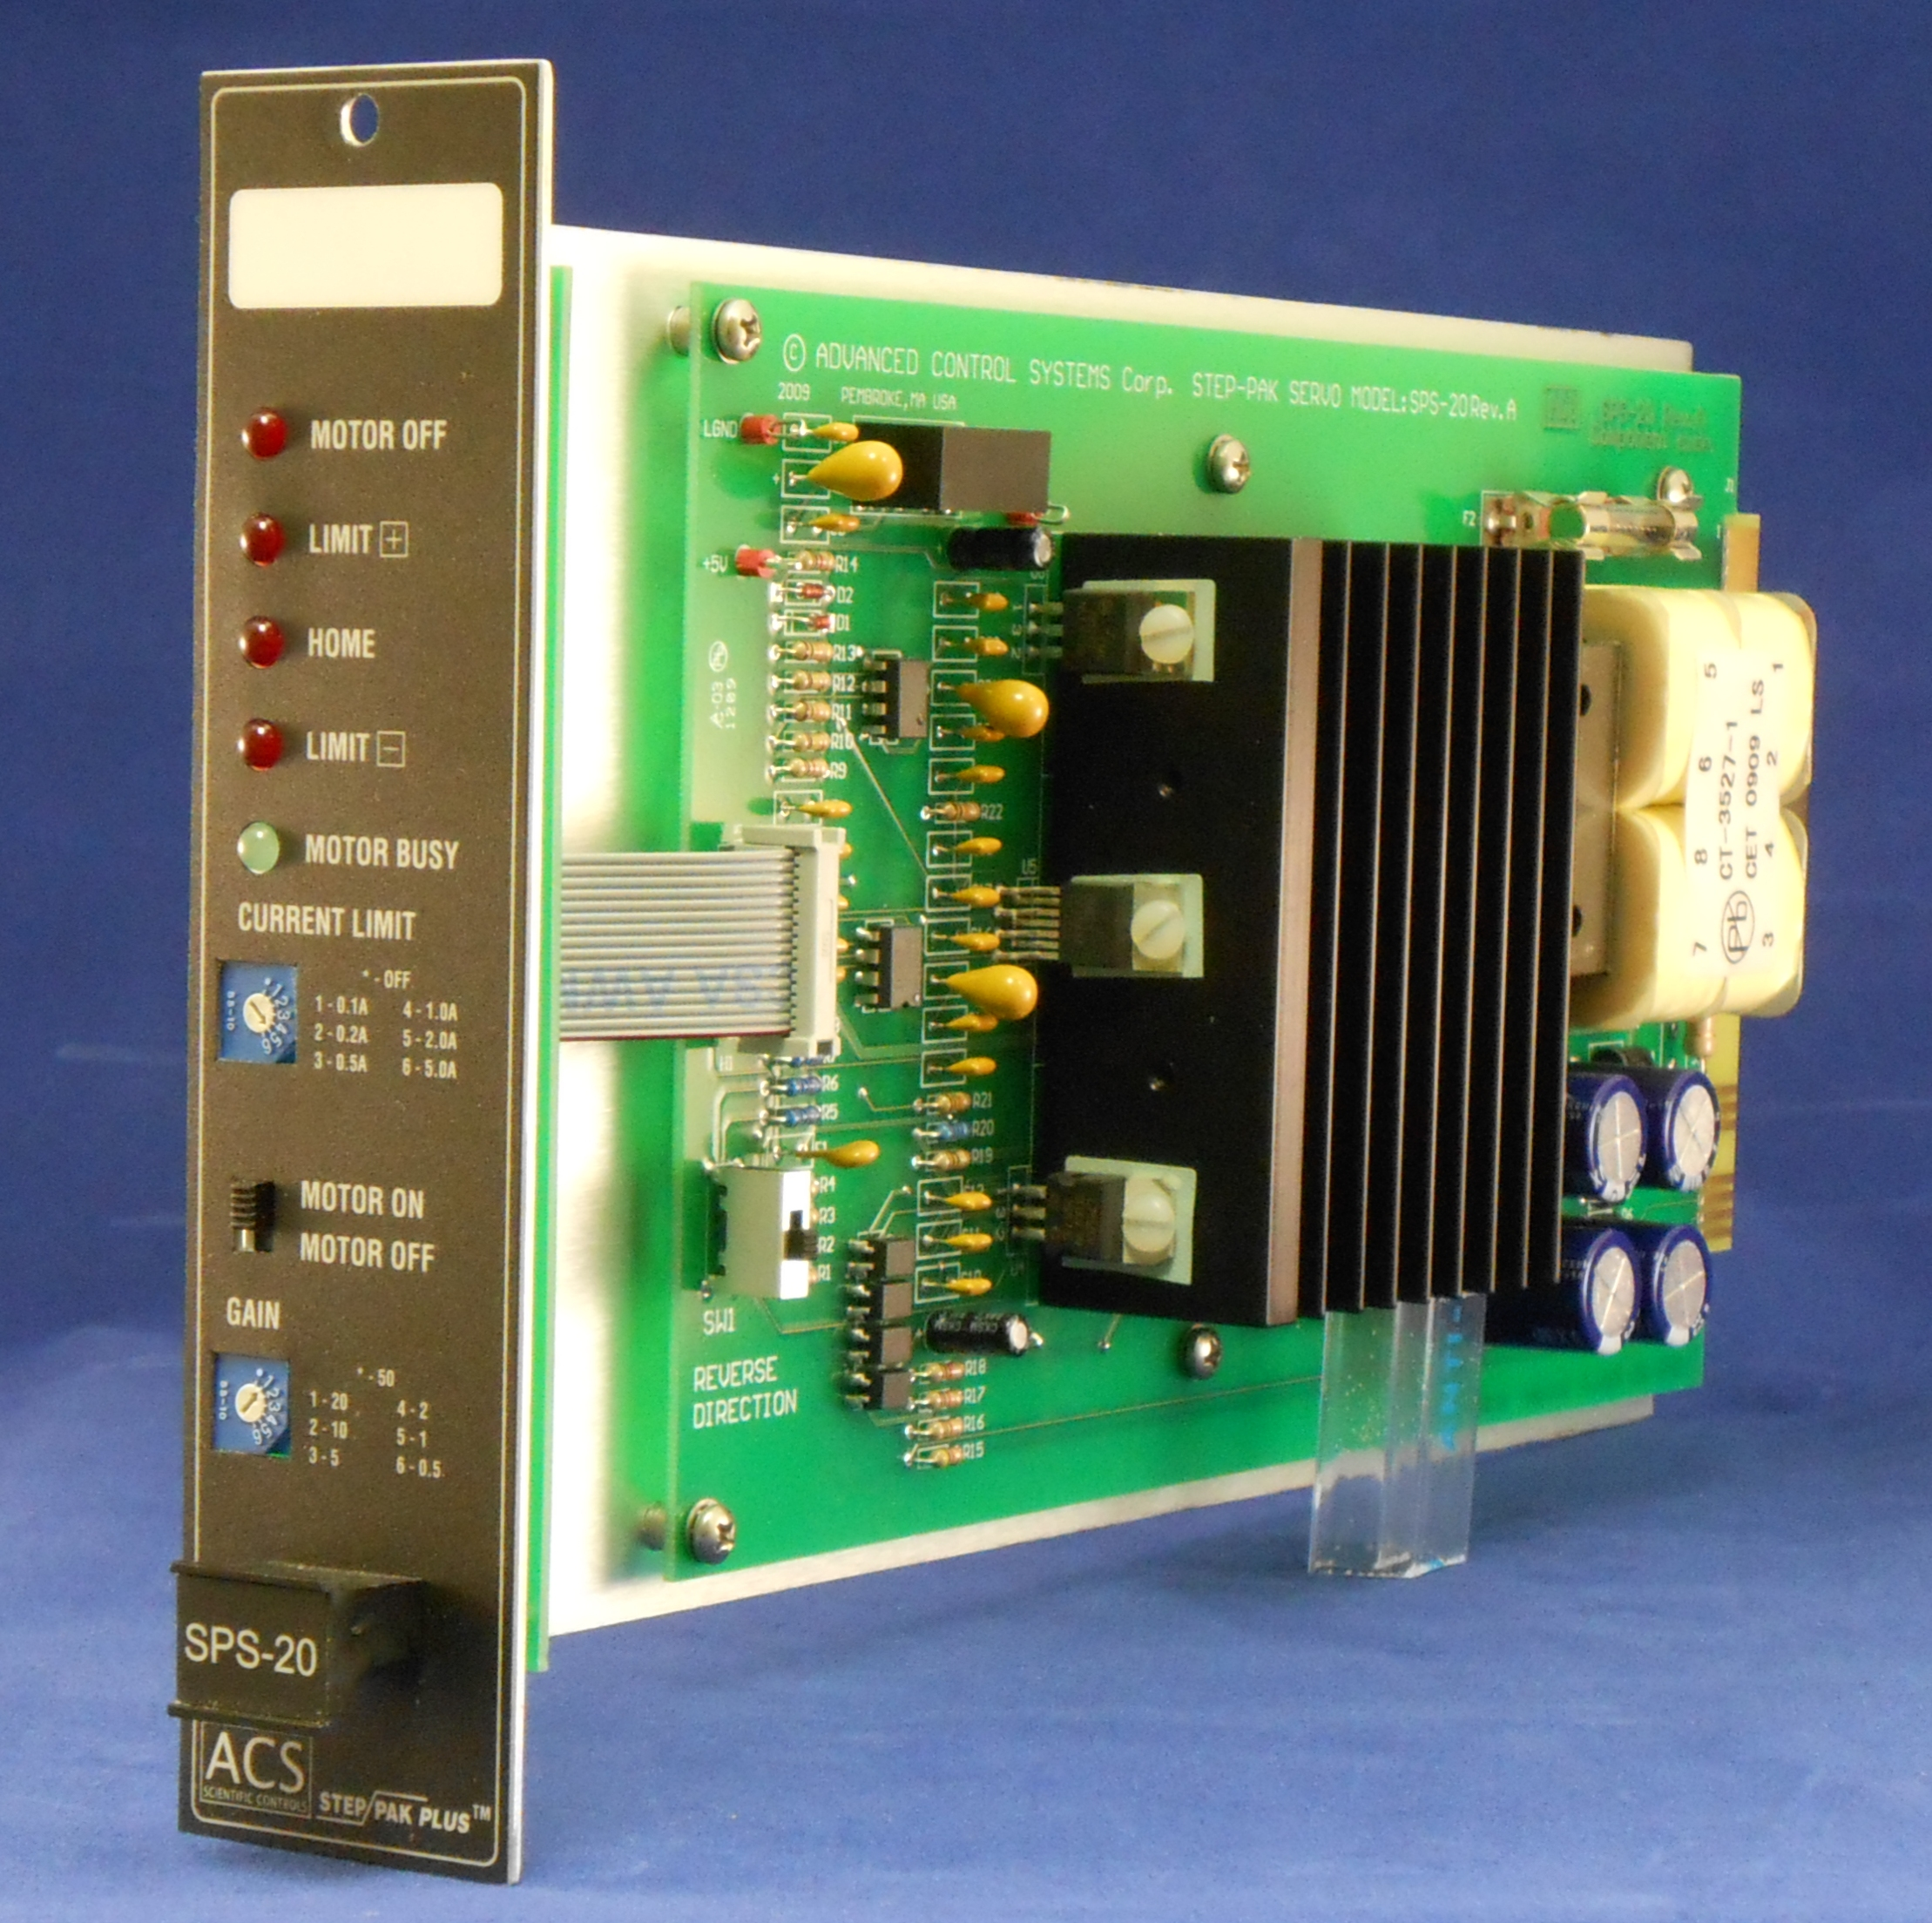 Step-Pak SPS-20 Servo Amplifier